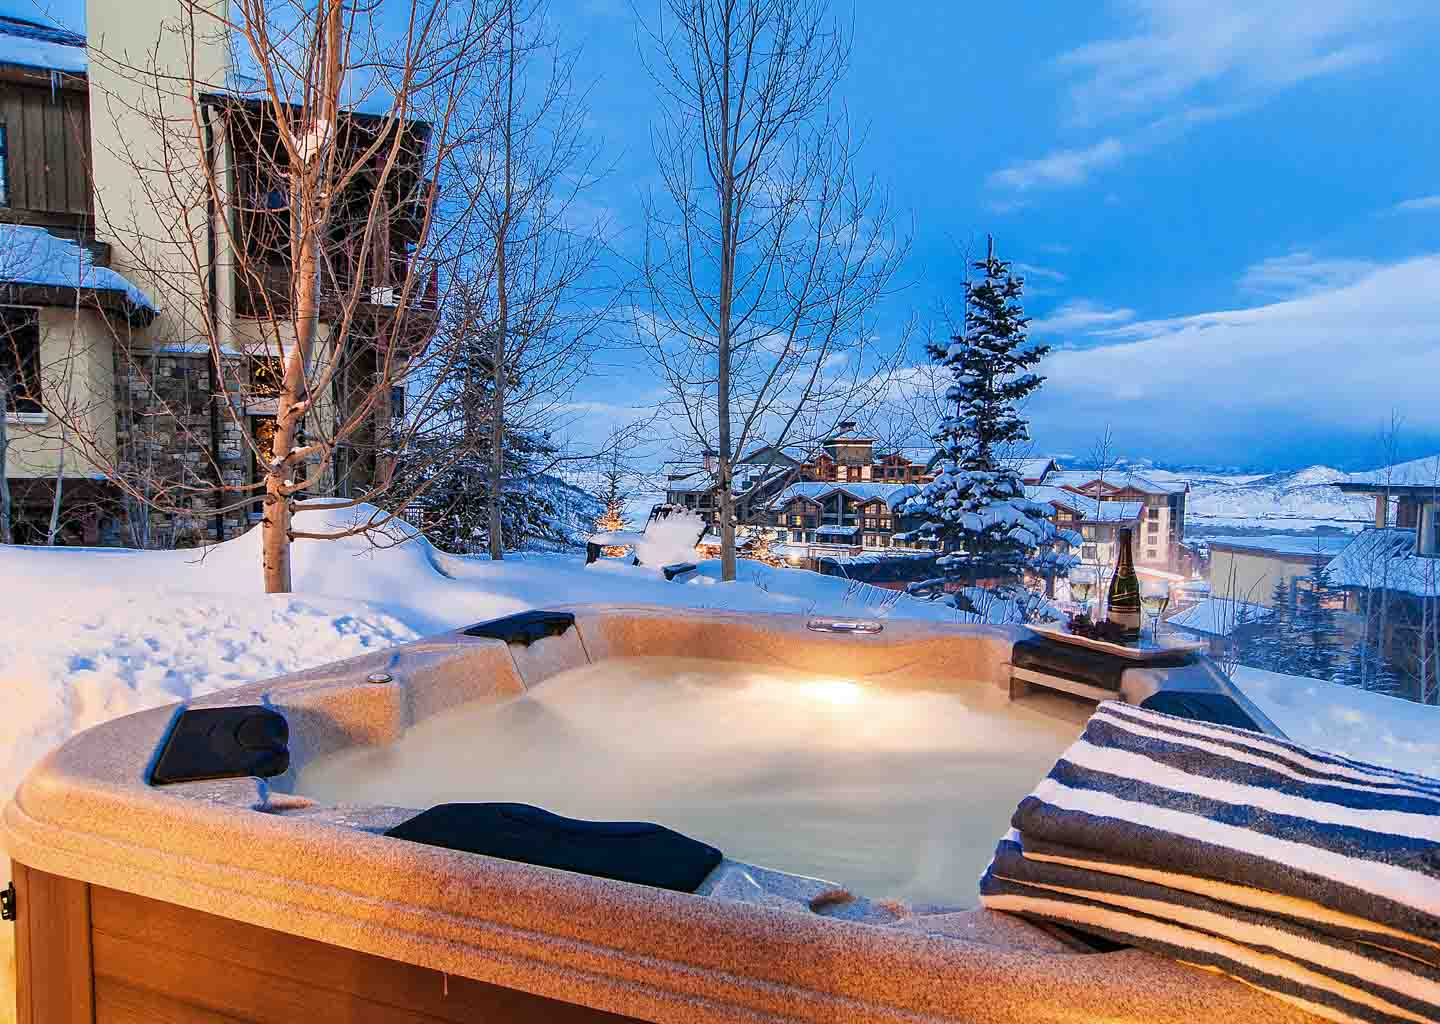 Hot Tub at Vintage on the Strand in Park City Utah